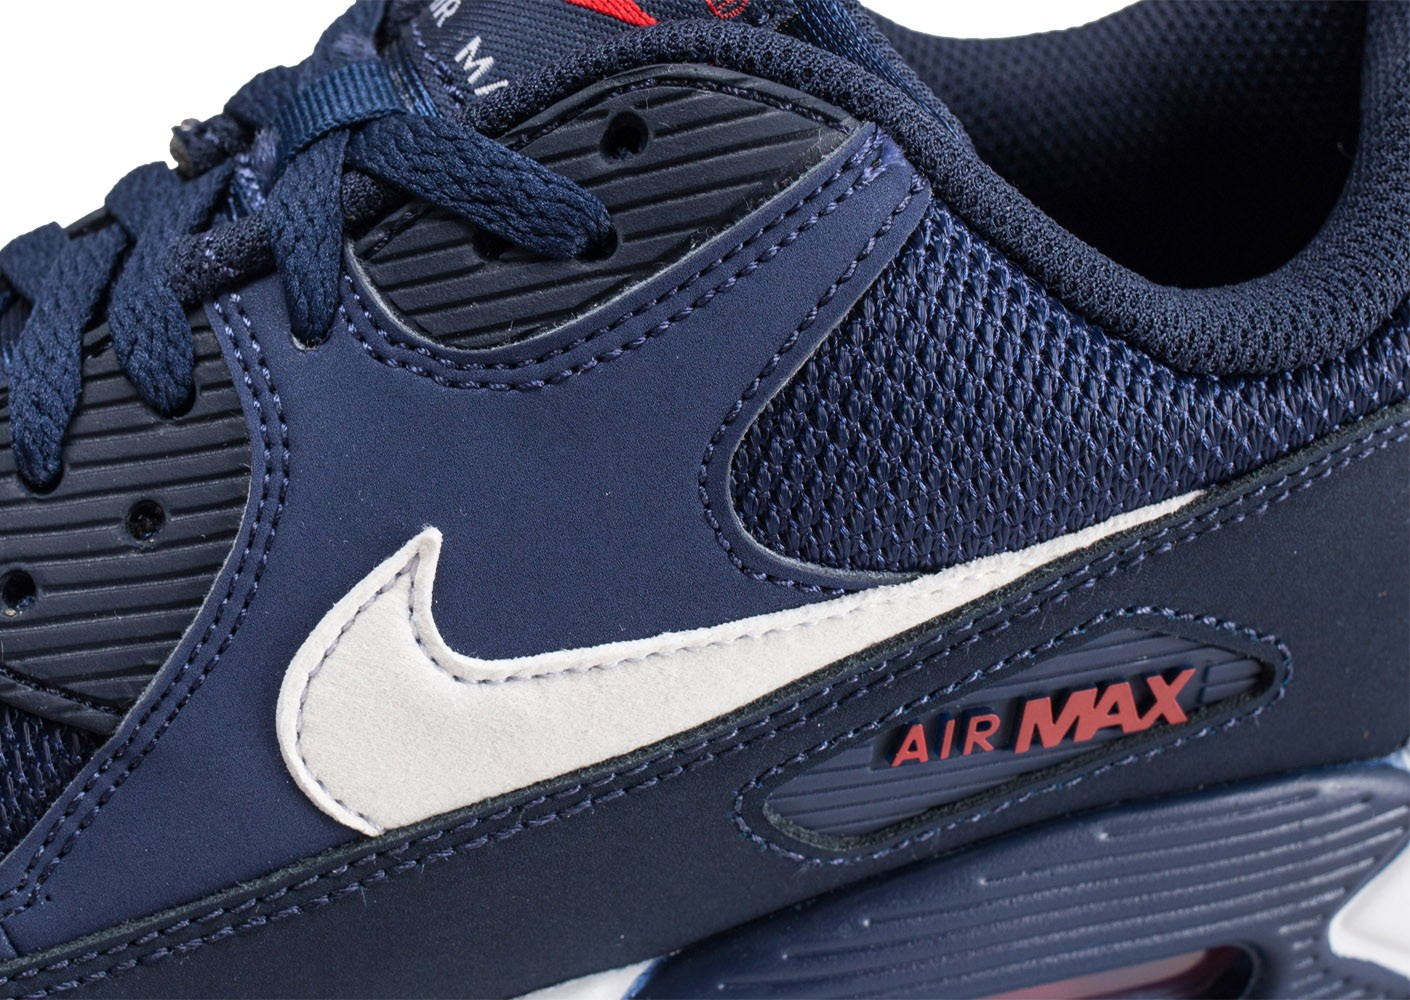 buy popular 89156 49838 ... Chaussures Nike Air Max 90 Essential bleue et blanche vue dessus